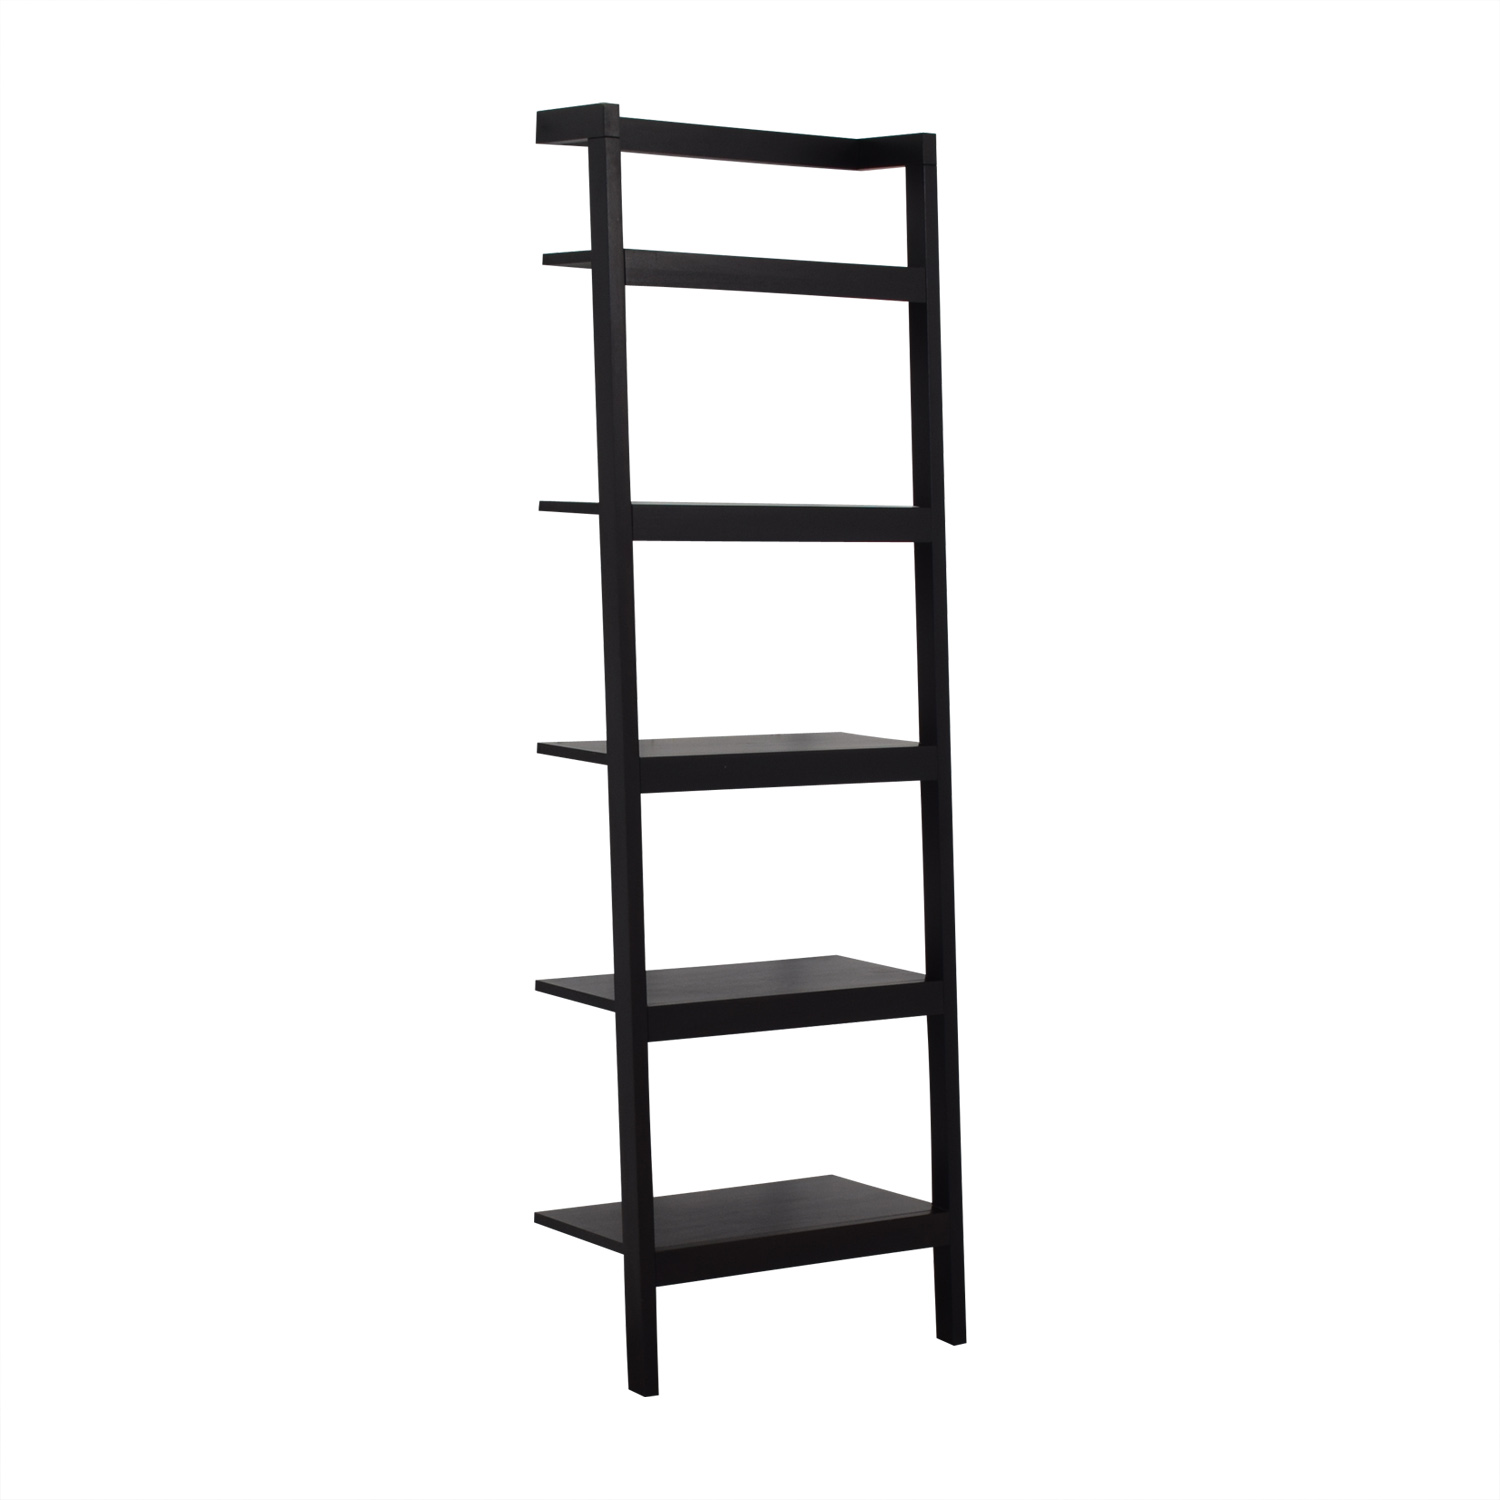 Crate & Barrel Sawyer Leaning Bookcase / Bookcases & Shelving